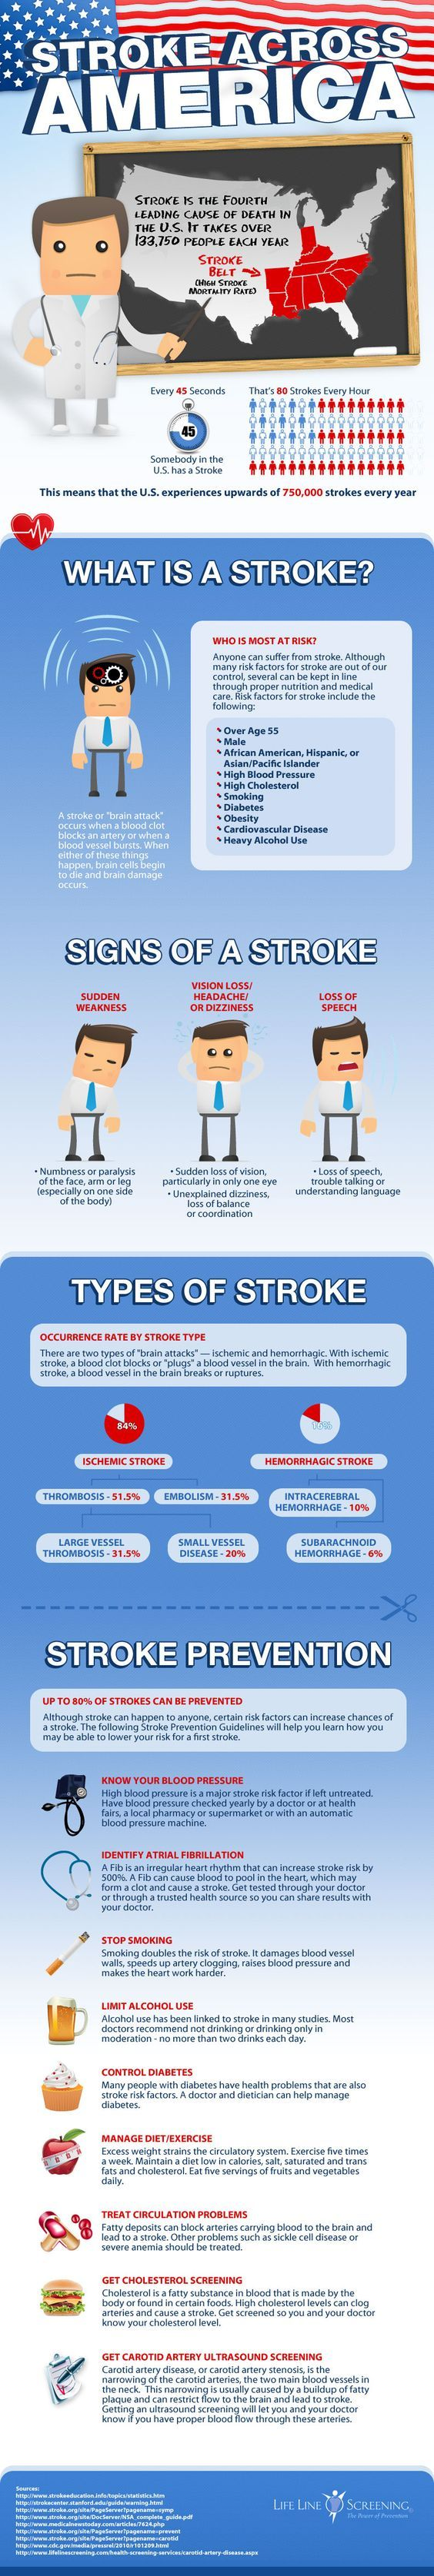 Stroke Across America. This chart shows you everything you need to know about Strokes: definition, types, signs and prevention measures. For more content like this, please visit our website:  http://insidefirstaid.com/ #first #aid #medical #emergency #strokes #facts #prevention